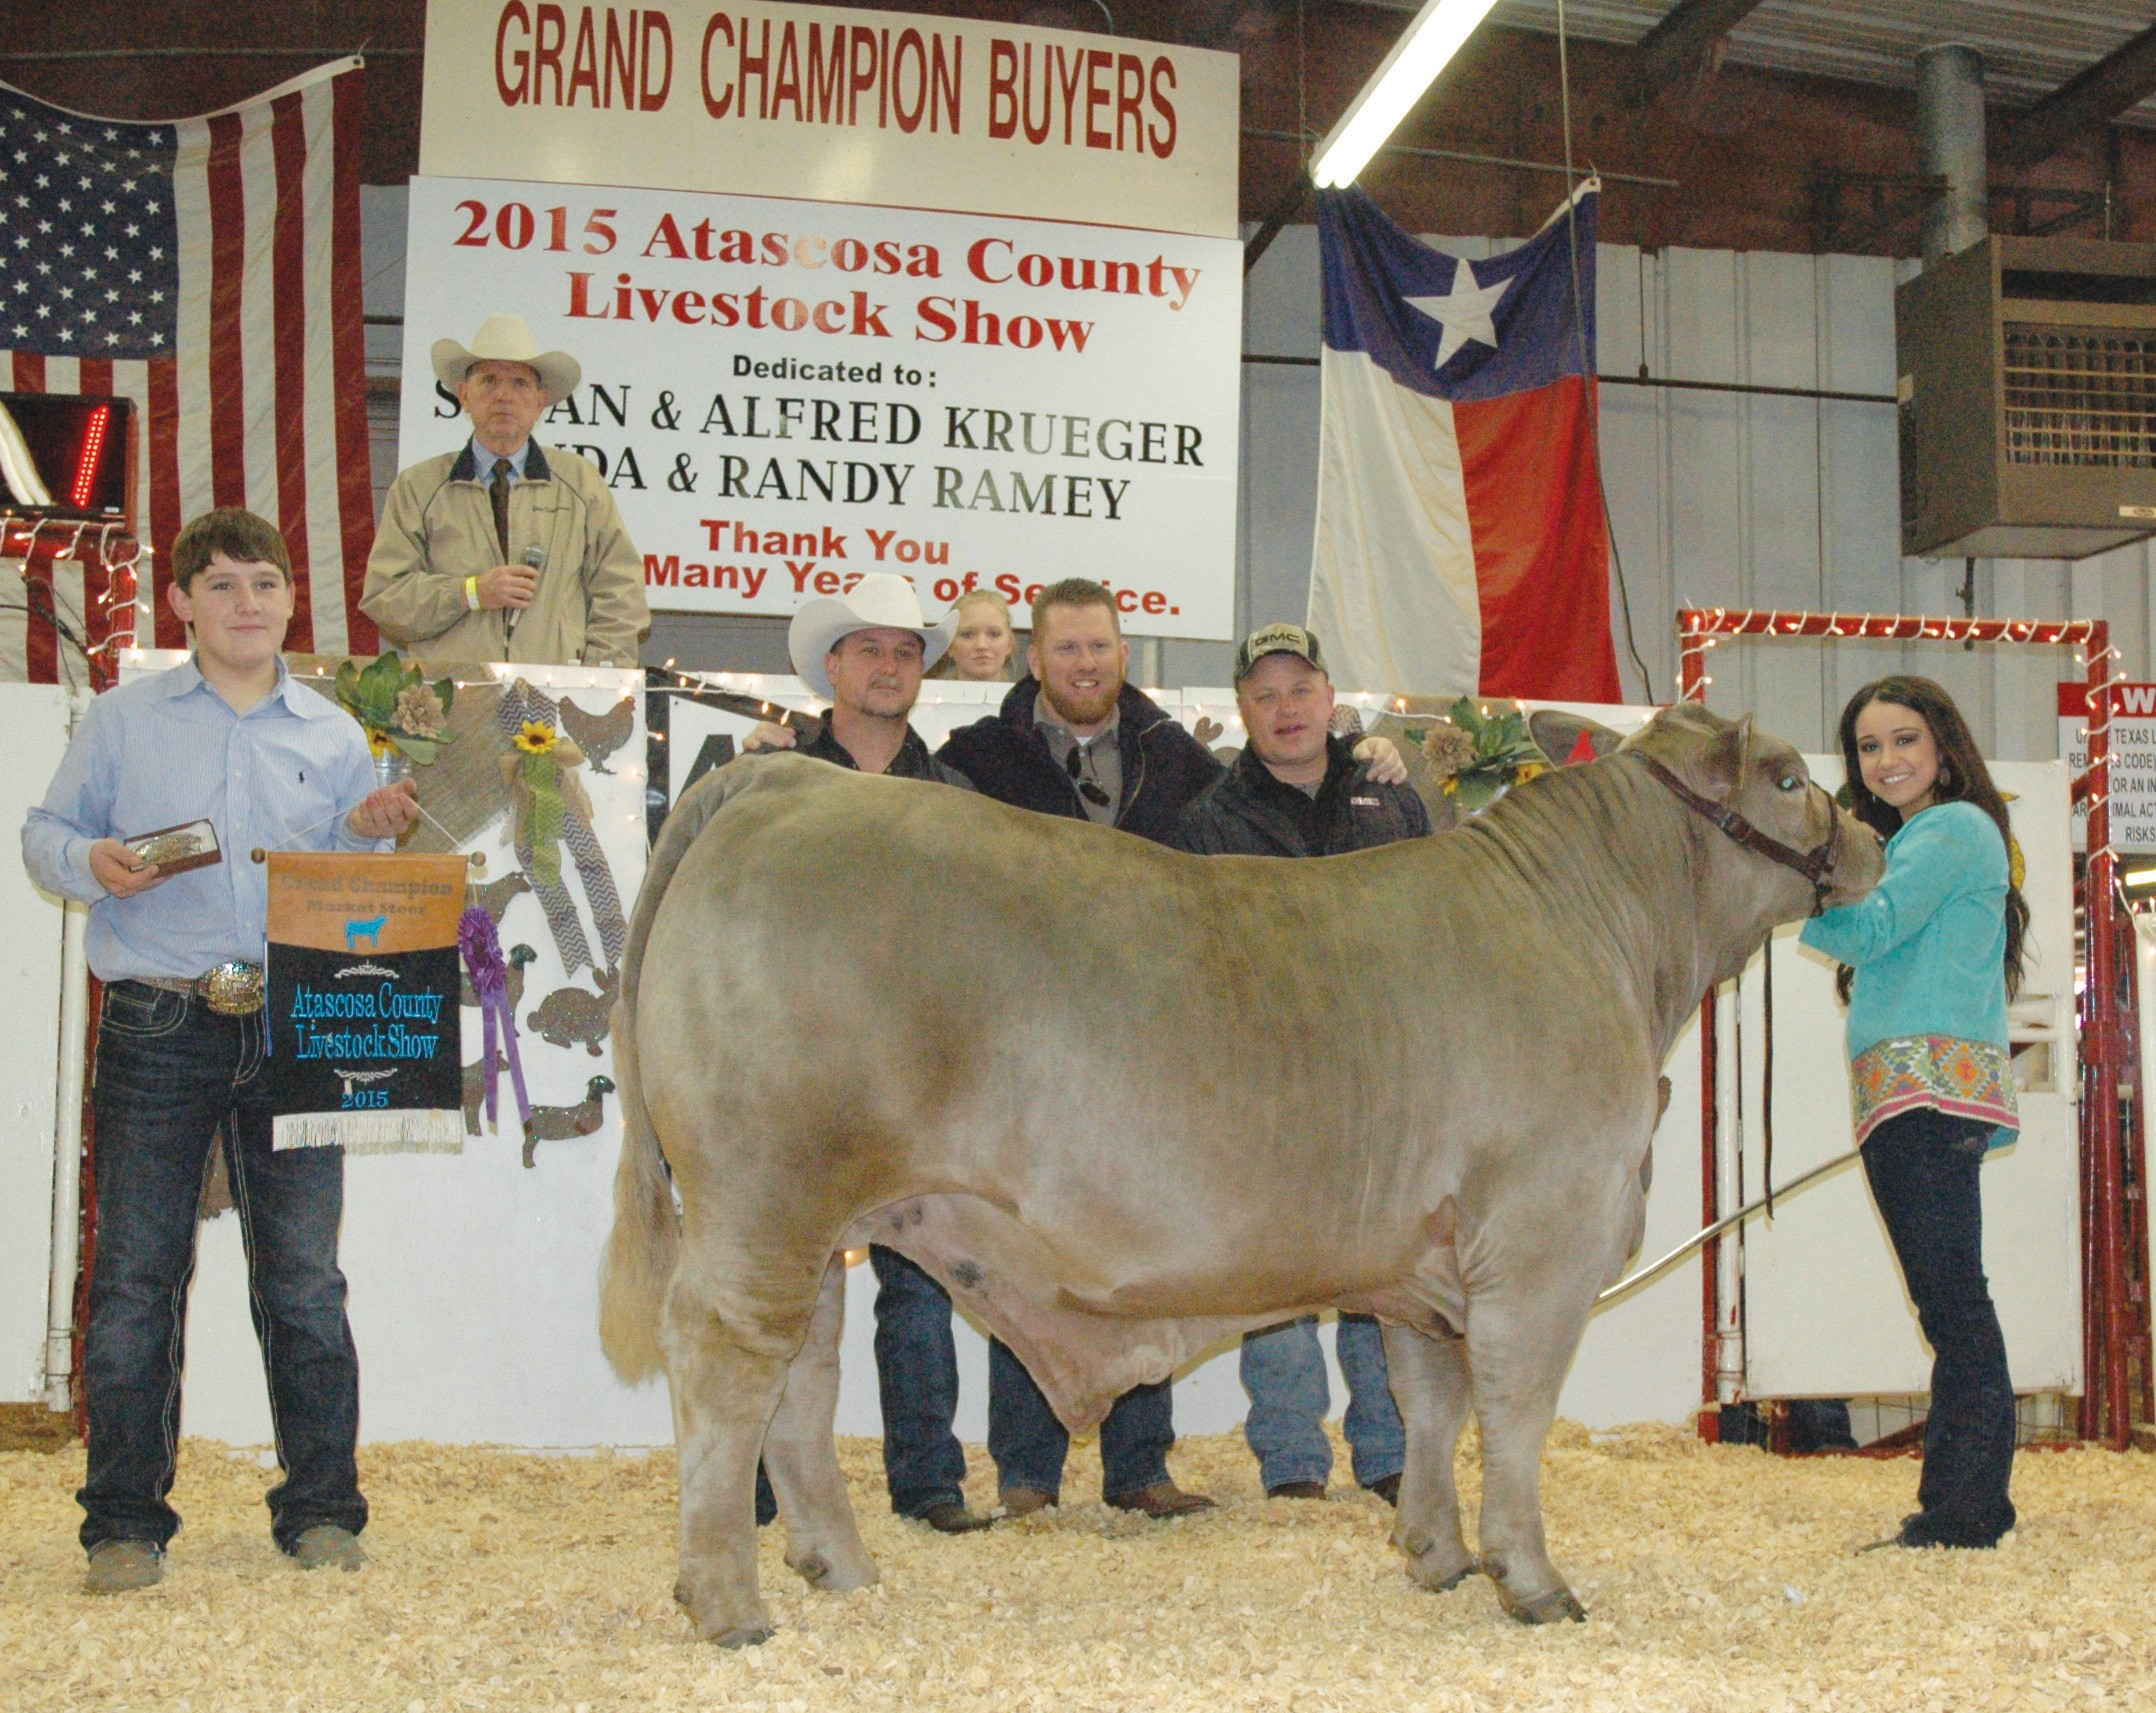 Tatum Bauer, right, is pictured with her Grand Champion Steer. The Heavy Weight ABC was sold to buyers Pursch Motors, Inc. and Mac Haik's Southway Ford for $8,000. Pictured left to right, Hunter Norment (with banner and buckle) Edward Dove and Tim Swan with Mac Haik's Southway Ford and Chris Morlock with Pursch Motors, Inc.